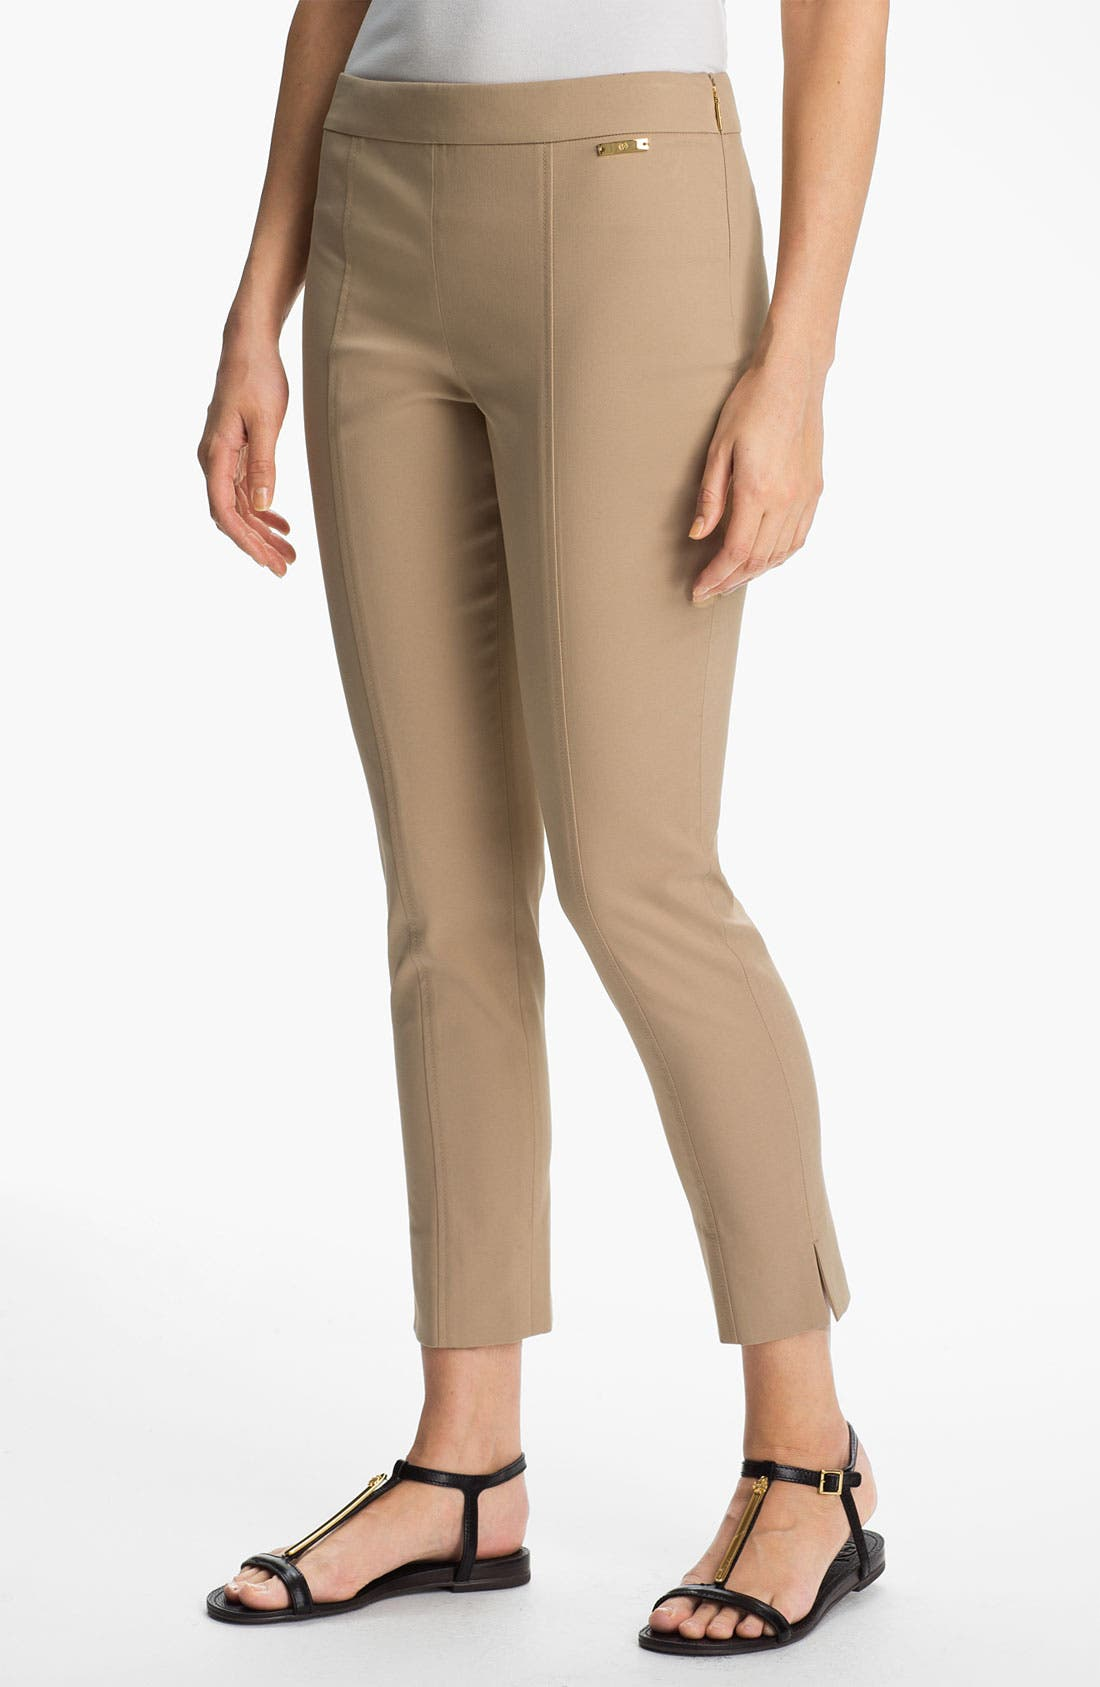 Main Image - Tory Burch 'Callie' Ankle Pants